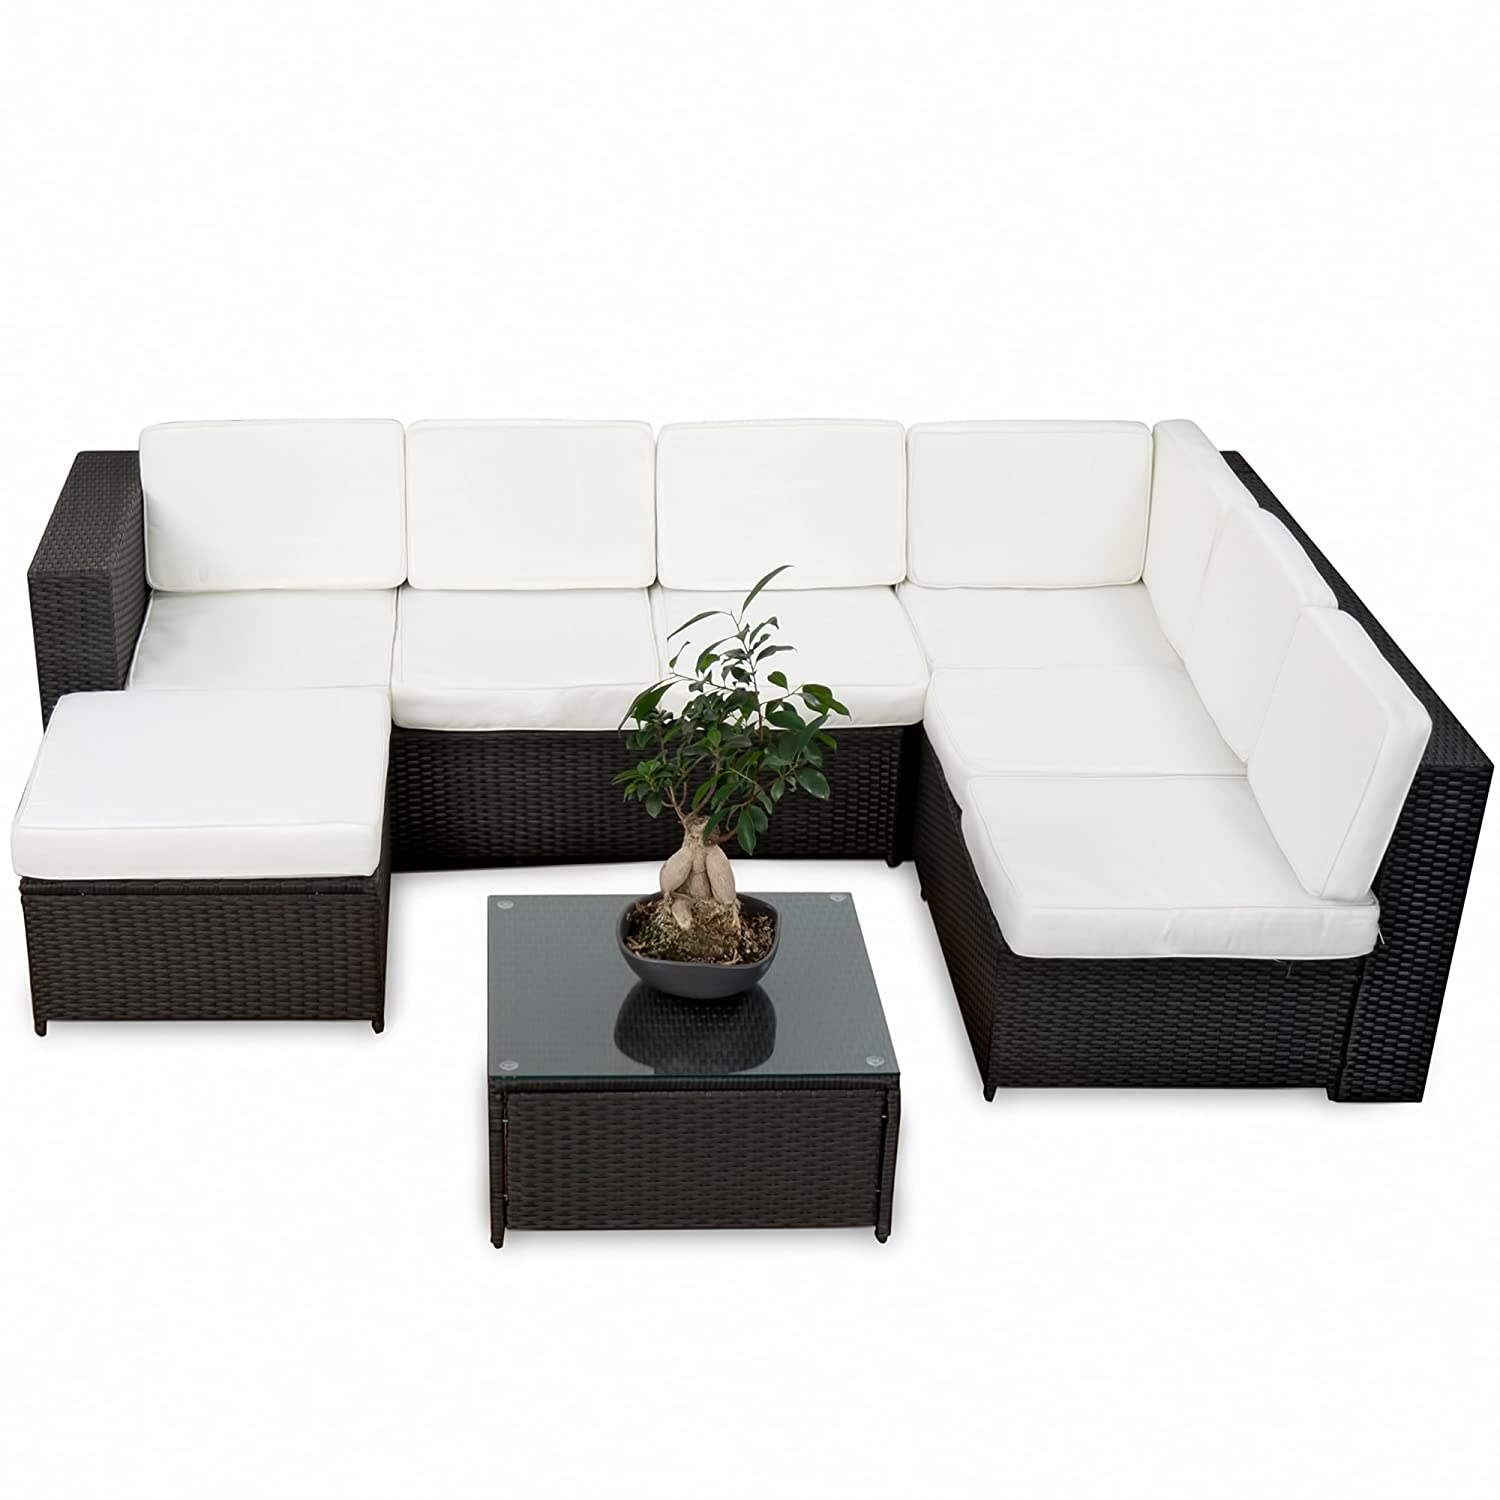 20tlg deluxe lounge garnitur set gruppe polyrattan sitzgruppe gartenm bel loungem bel. Black Bedroom Furniture Sets. Home Design Ideas